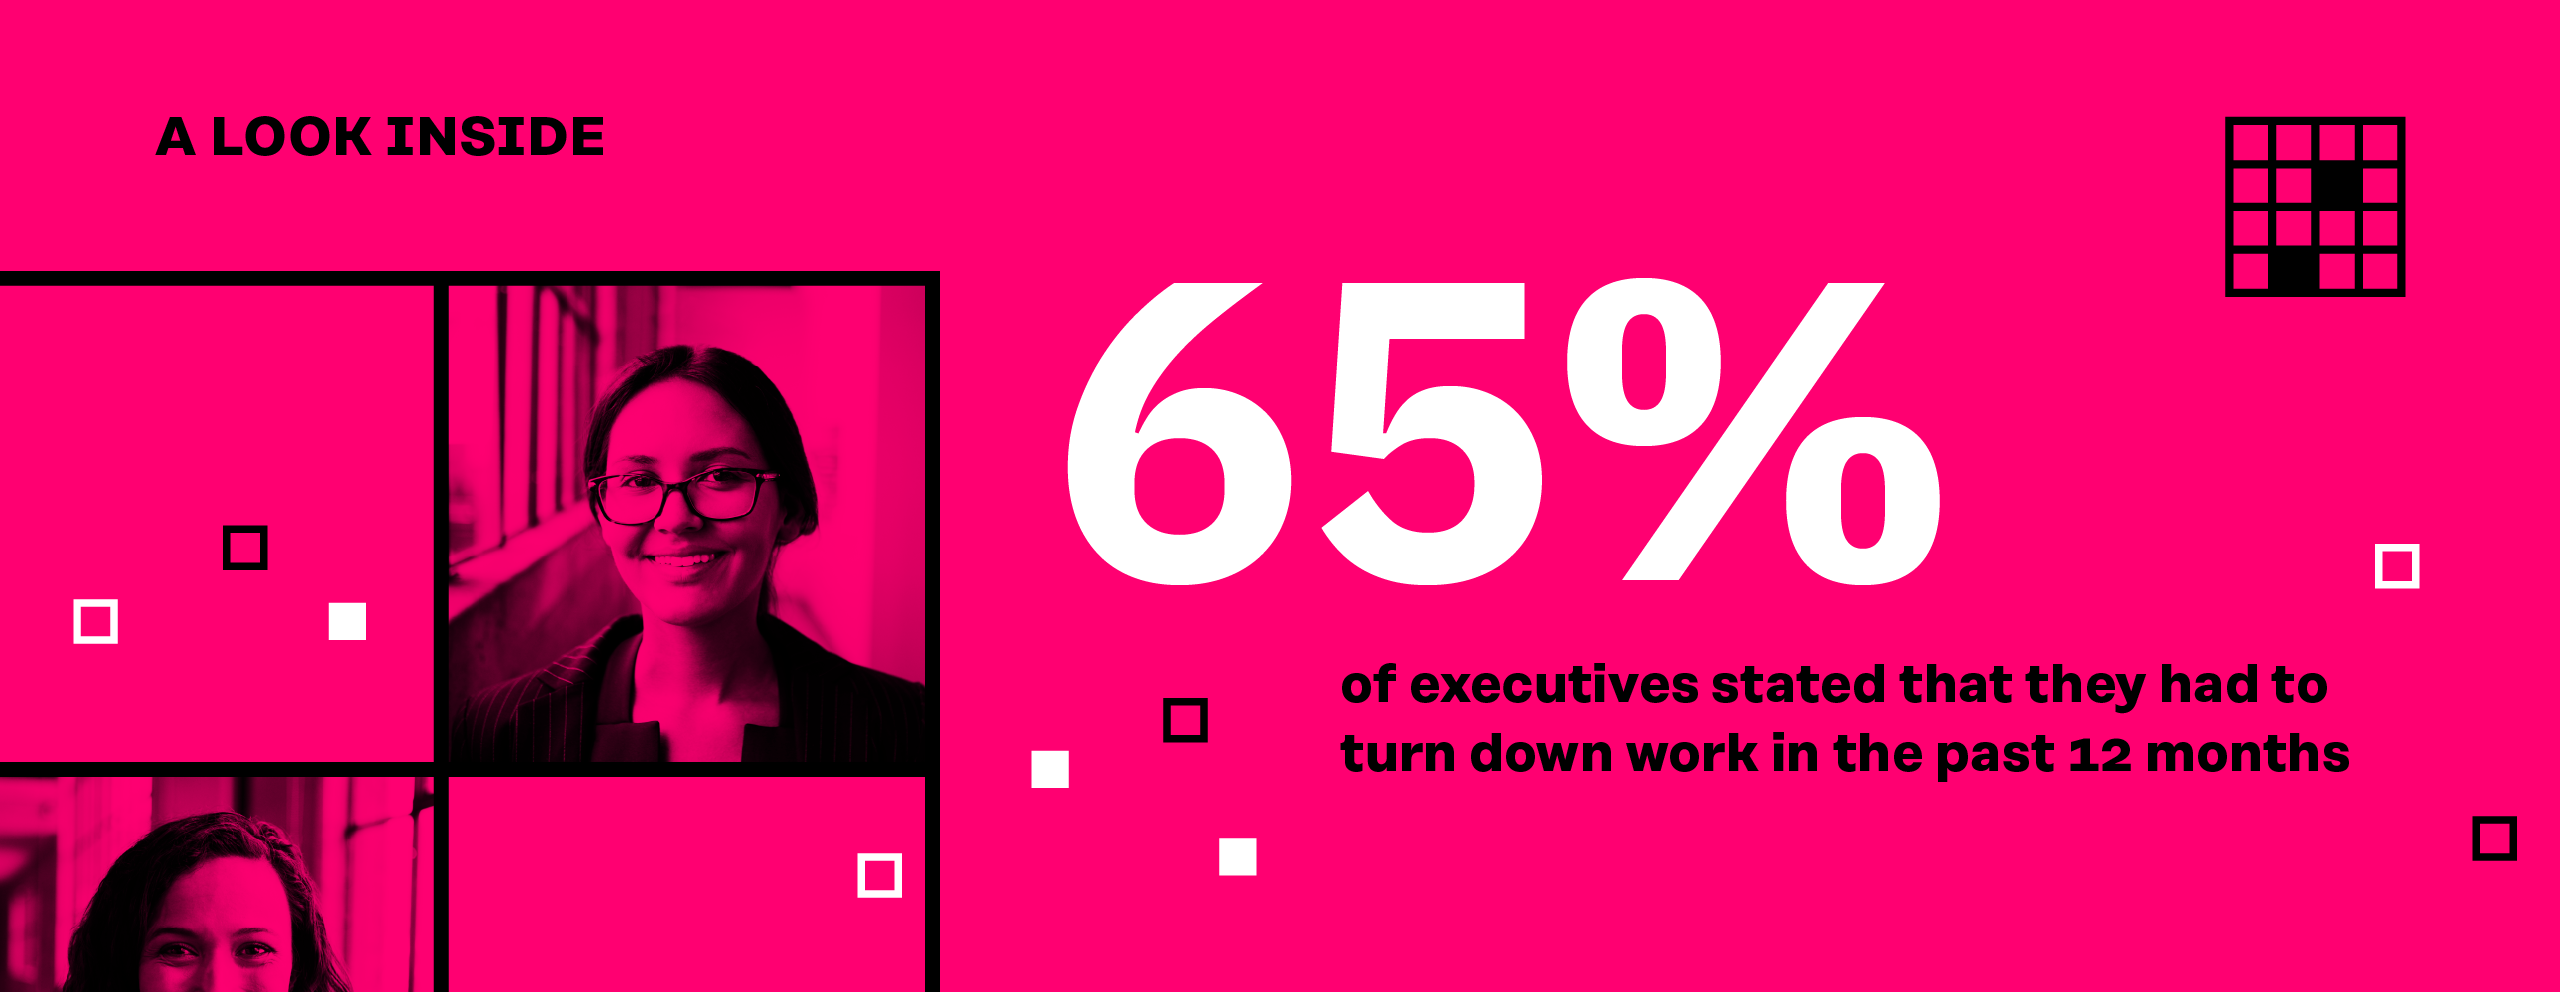 65% of executives stated that they had to turn down work